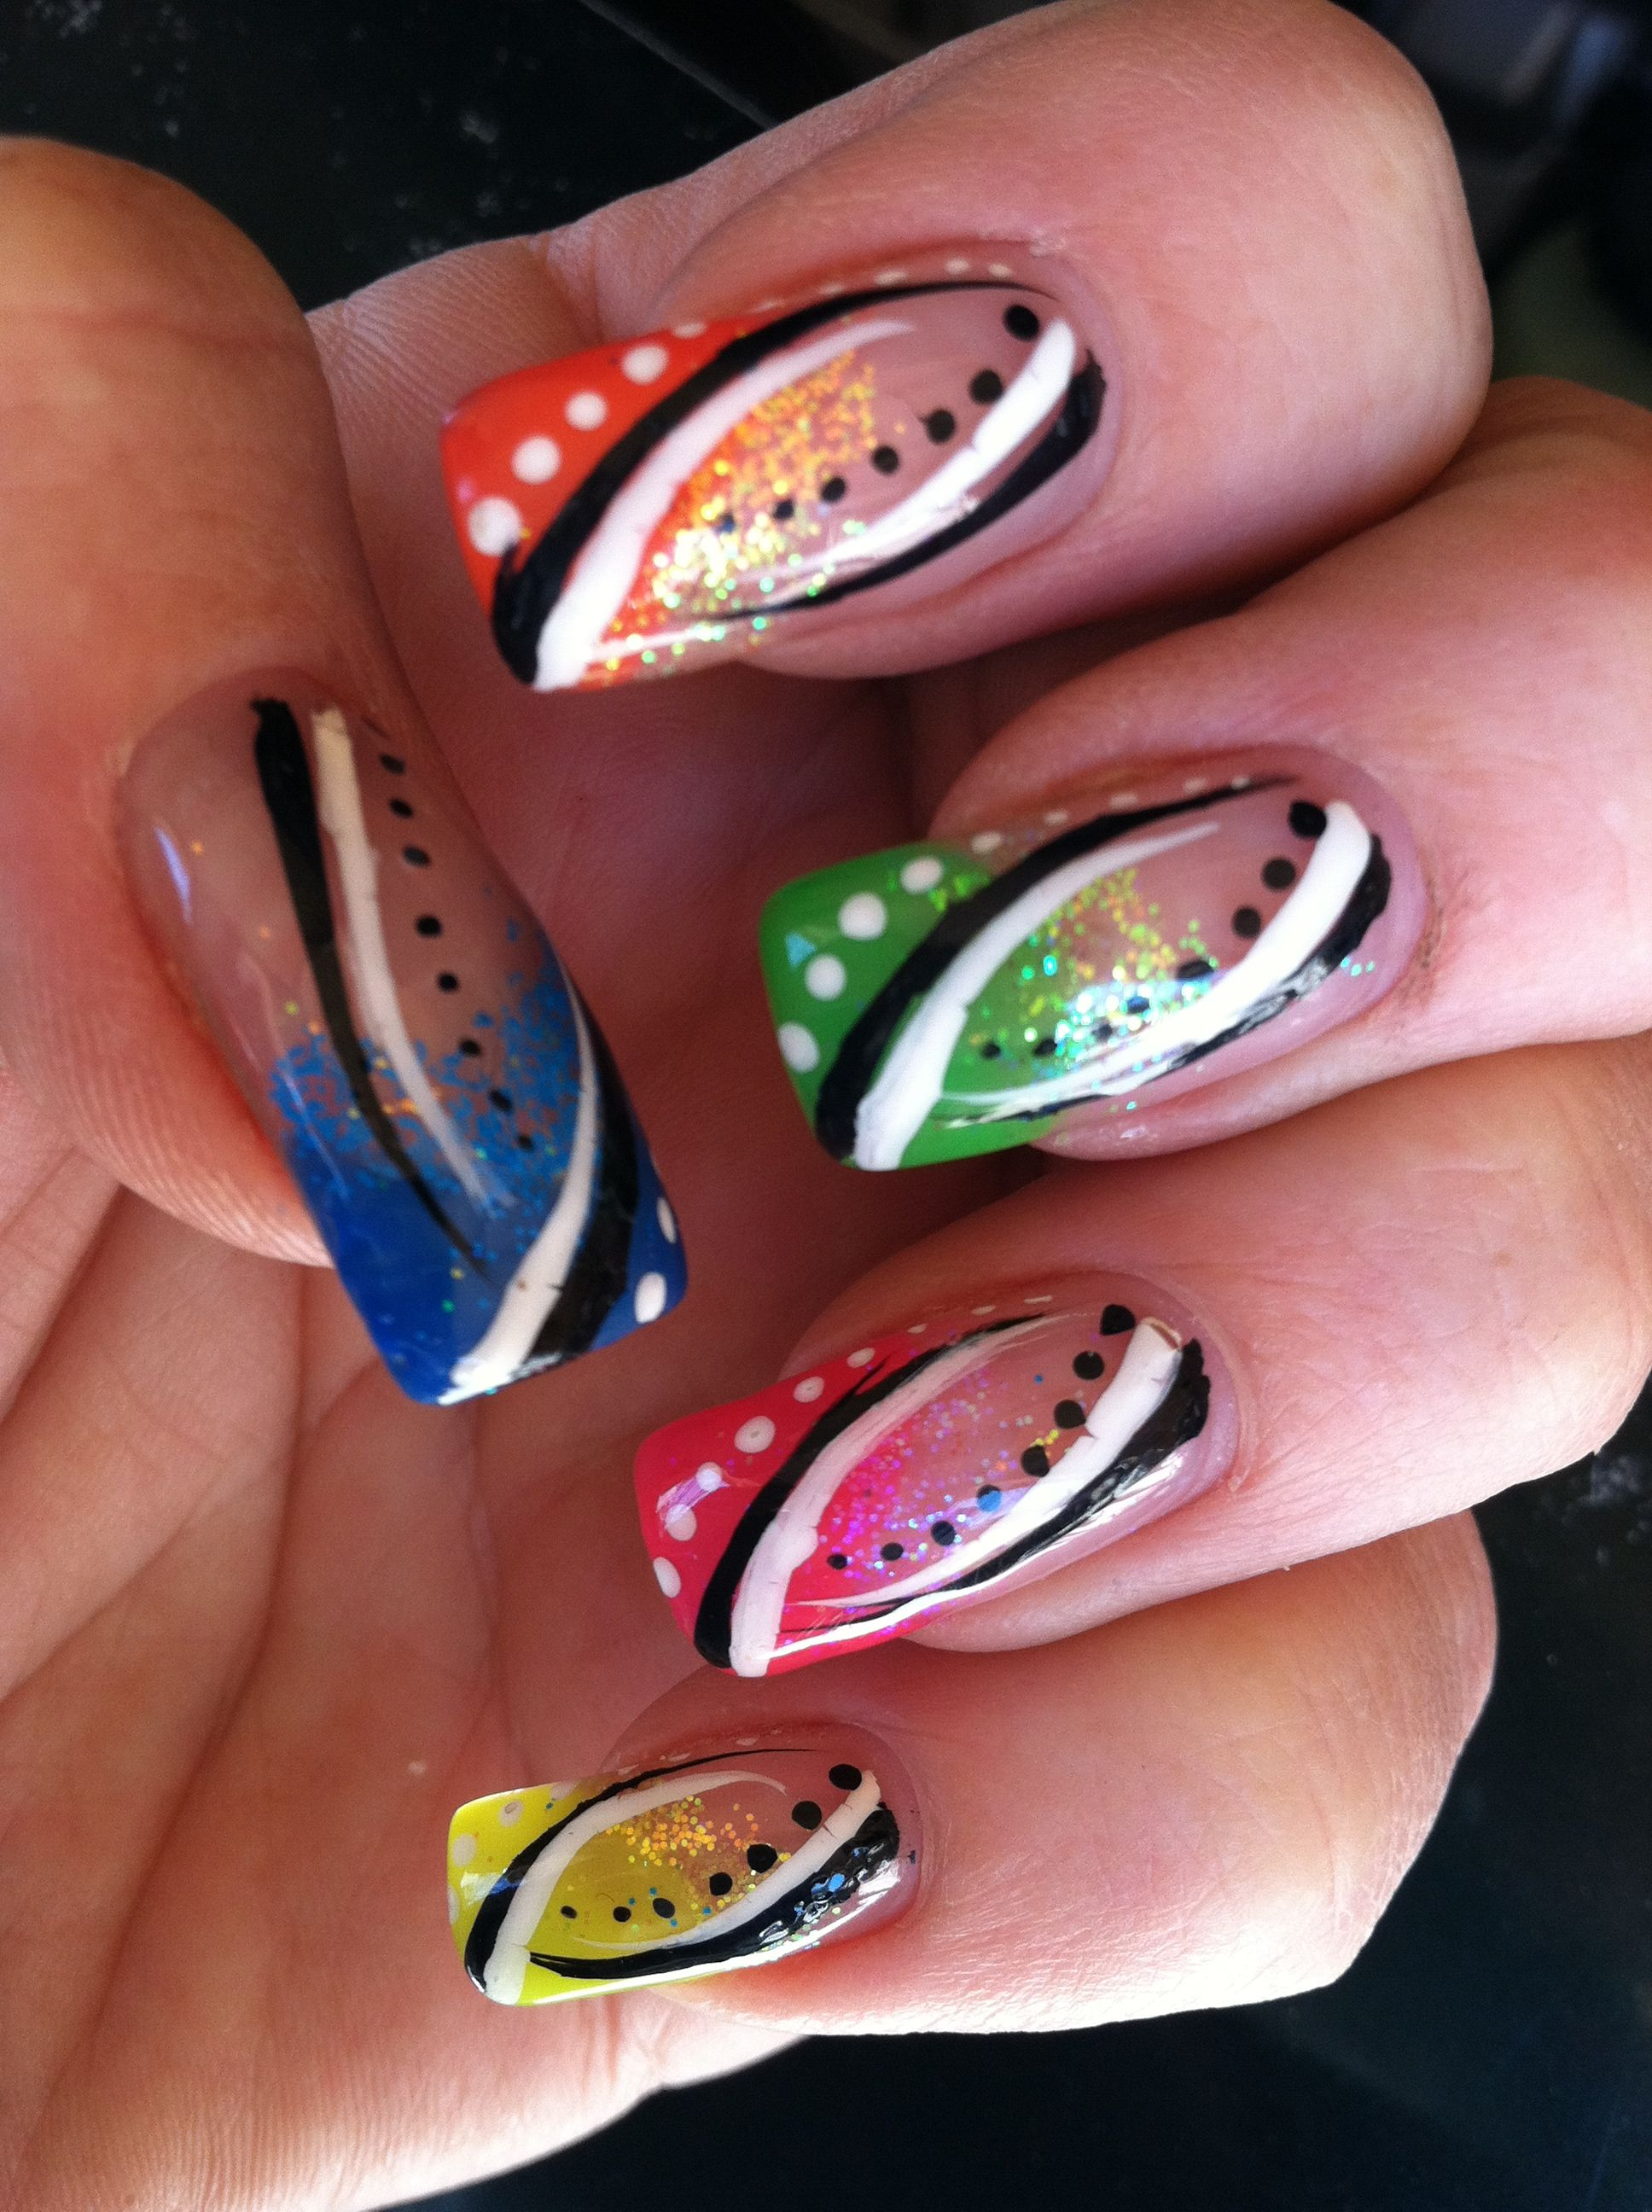 Better pic of neon tips nail art design Nails-go-round in Tucson AZ ...